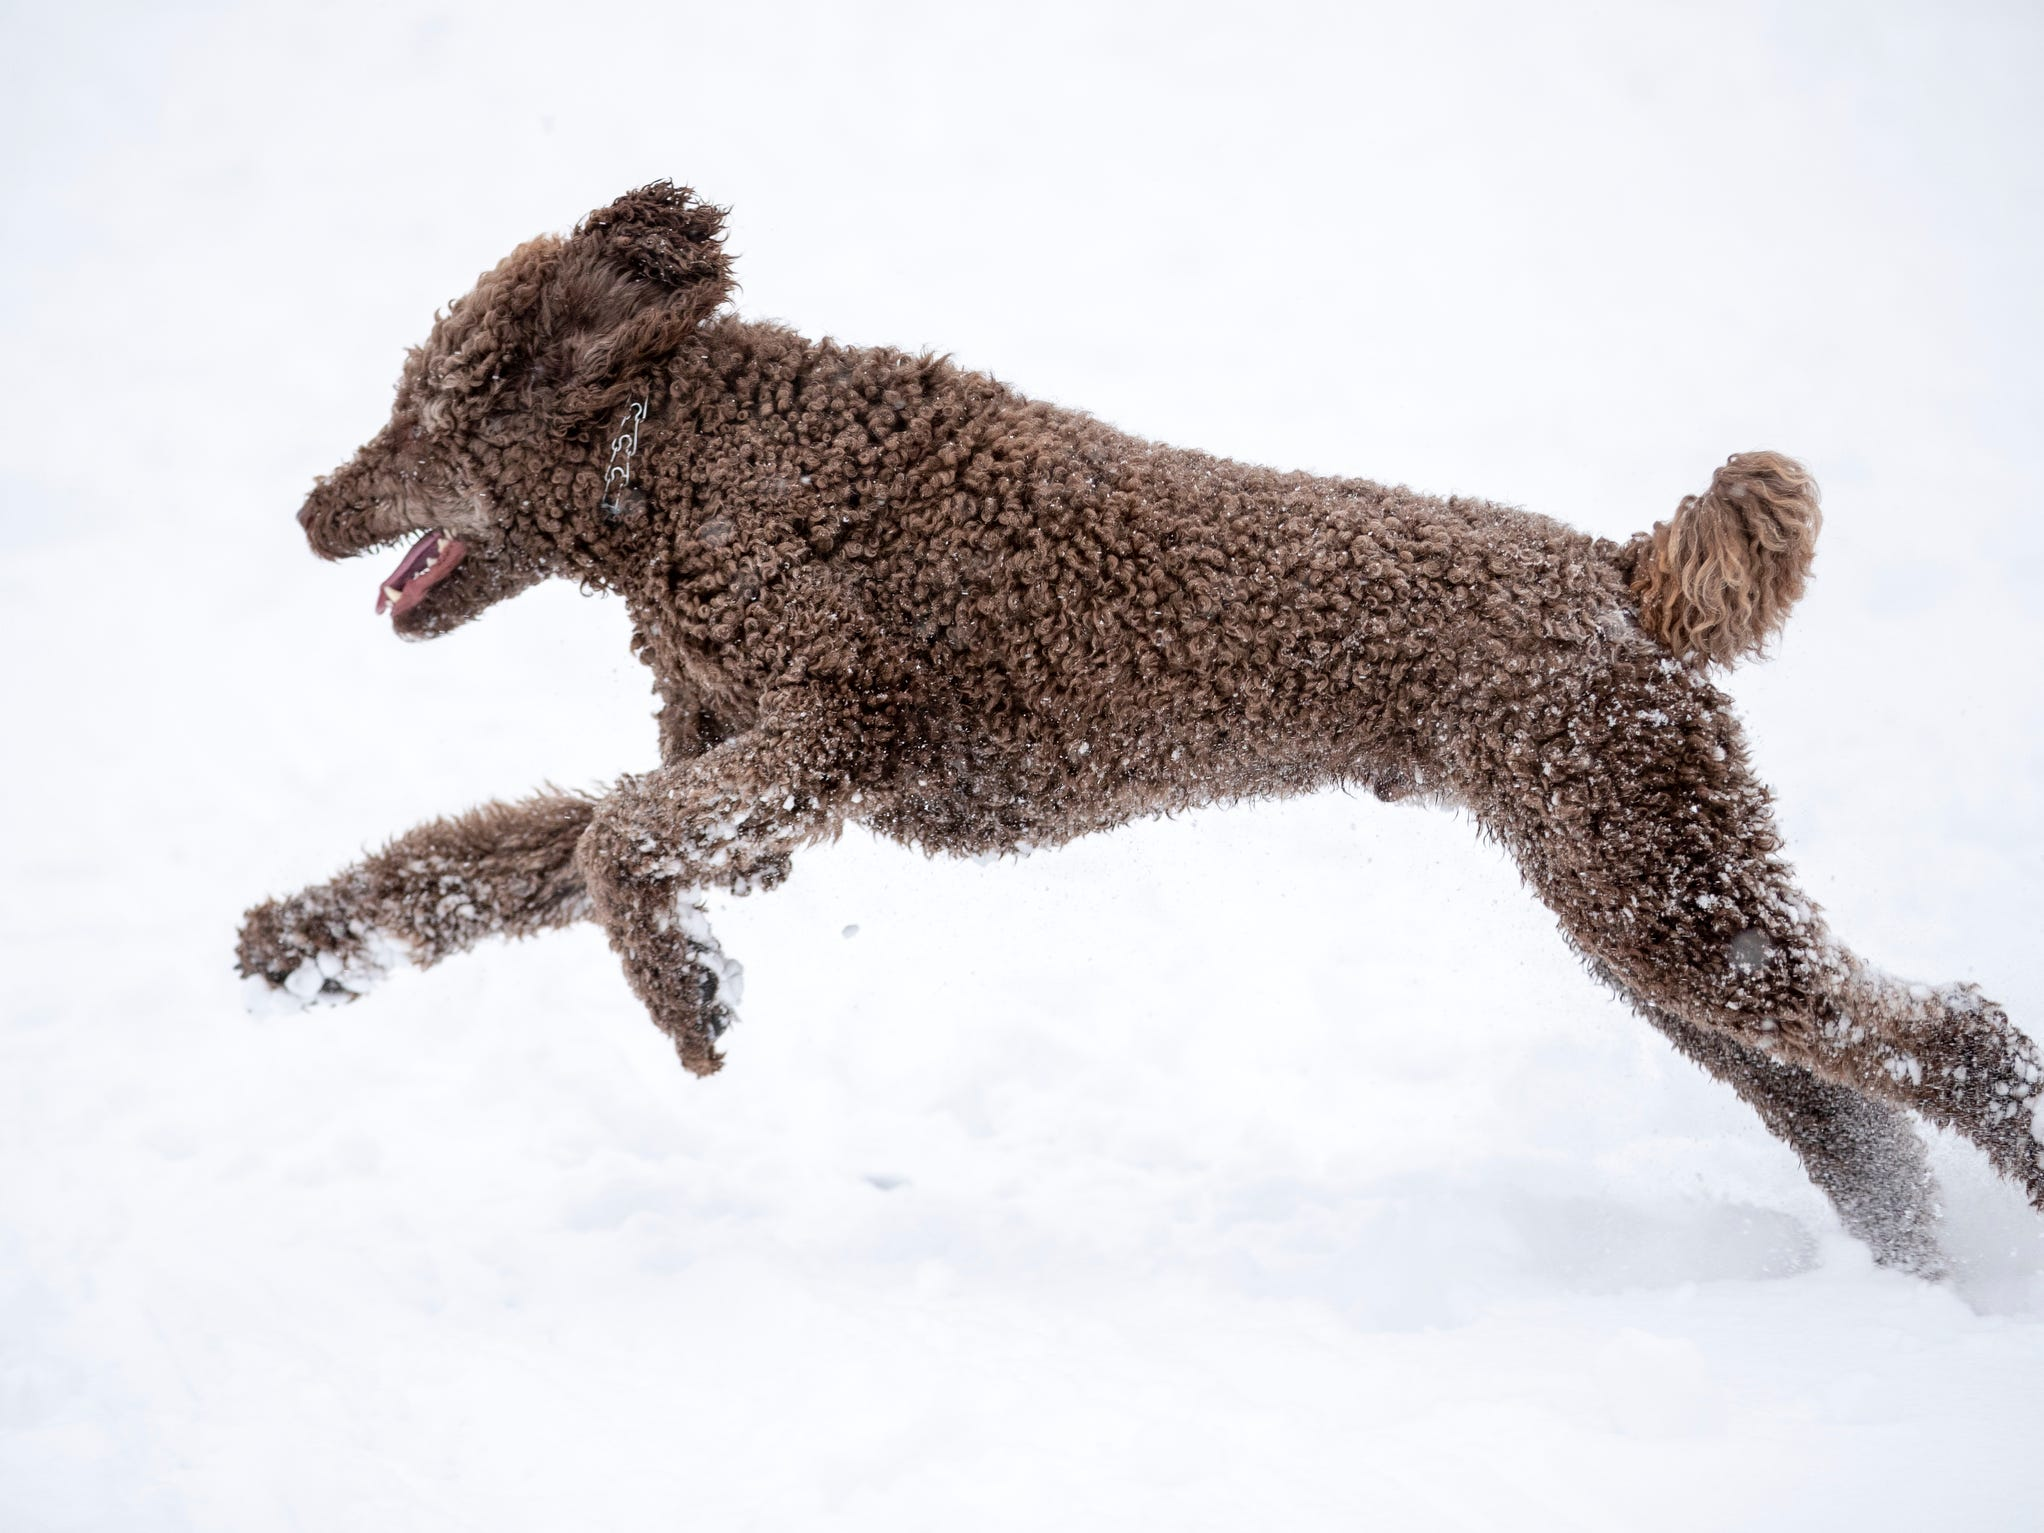 Gershwin the poodle bounds in snow at Butler University on a day where 5-7 inches of snow is expected to fall in Central Indiana, Indianapolis, Saturday, Jan. 12, 2019.